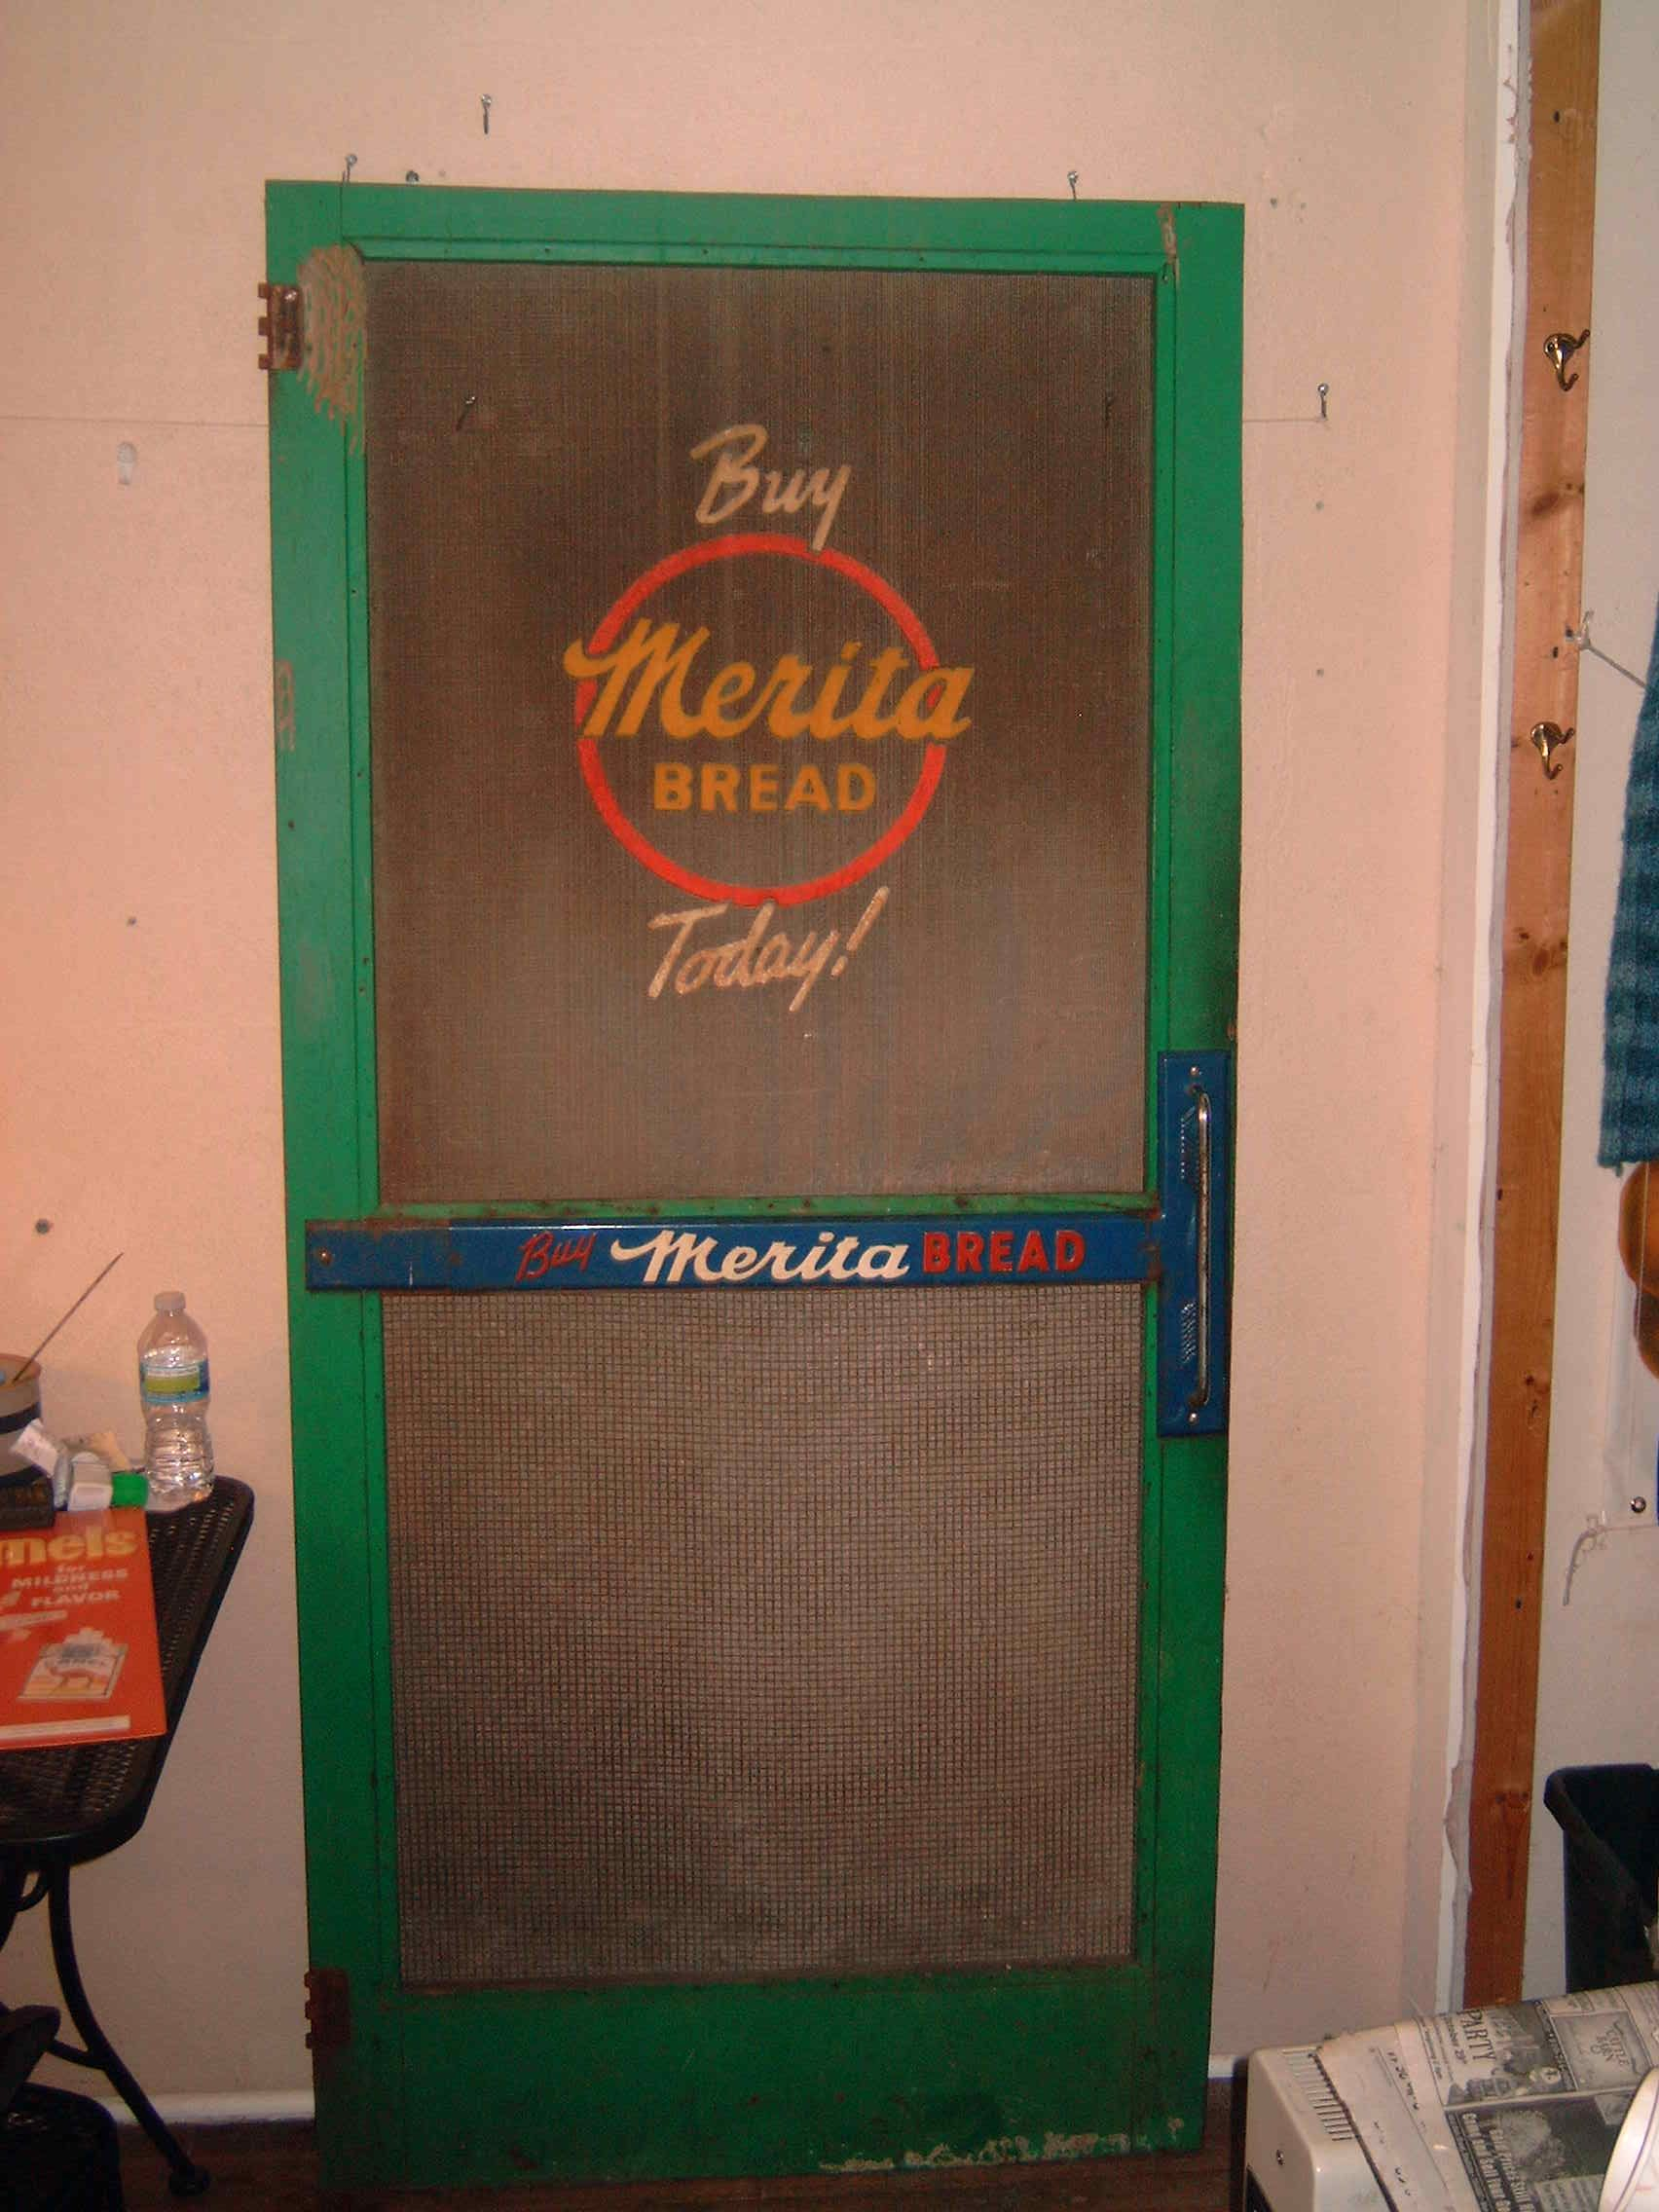 Merita bread screen door from country store how cool this would be